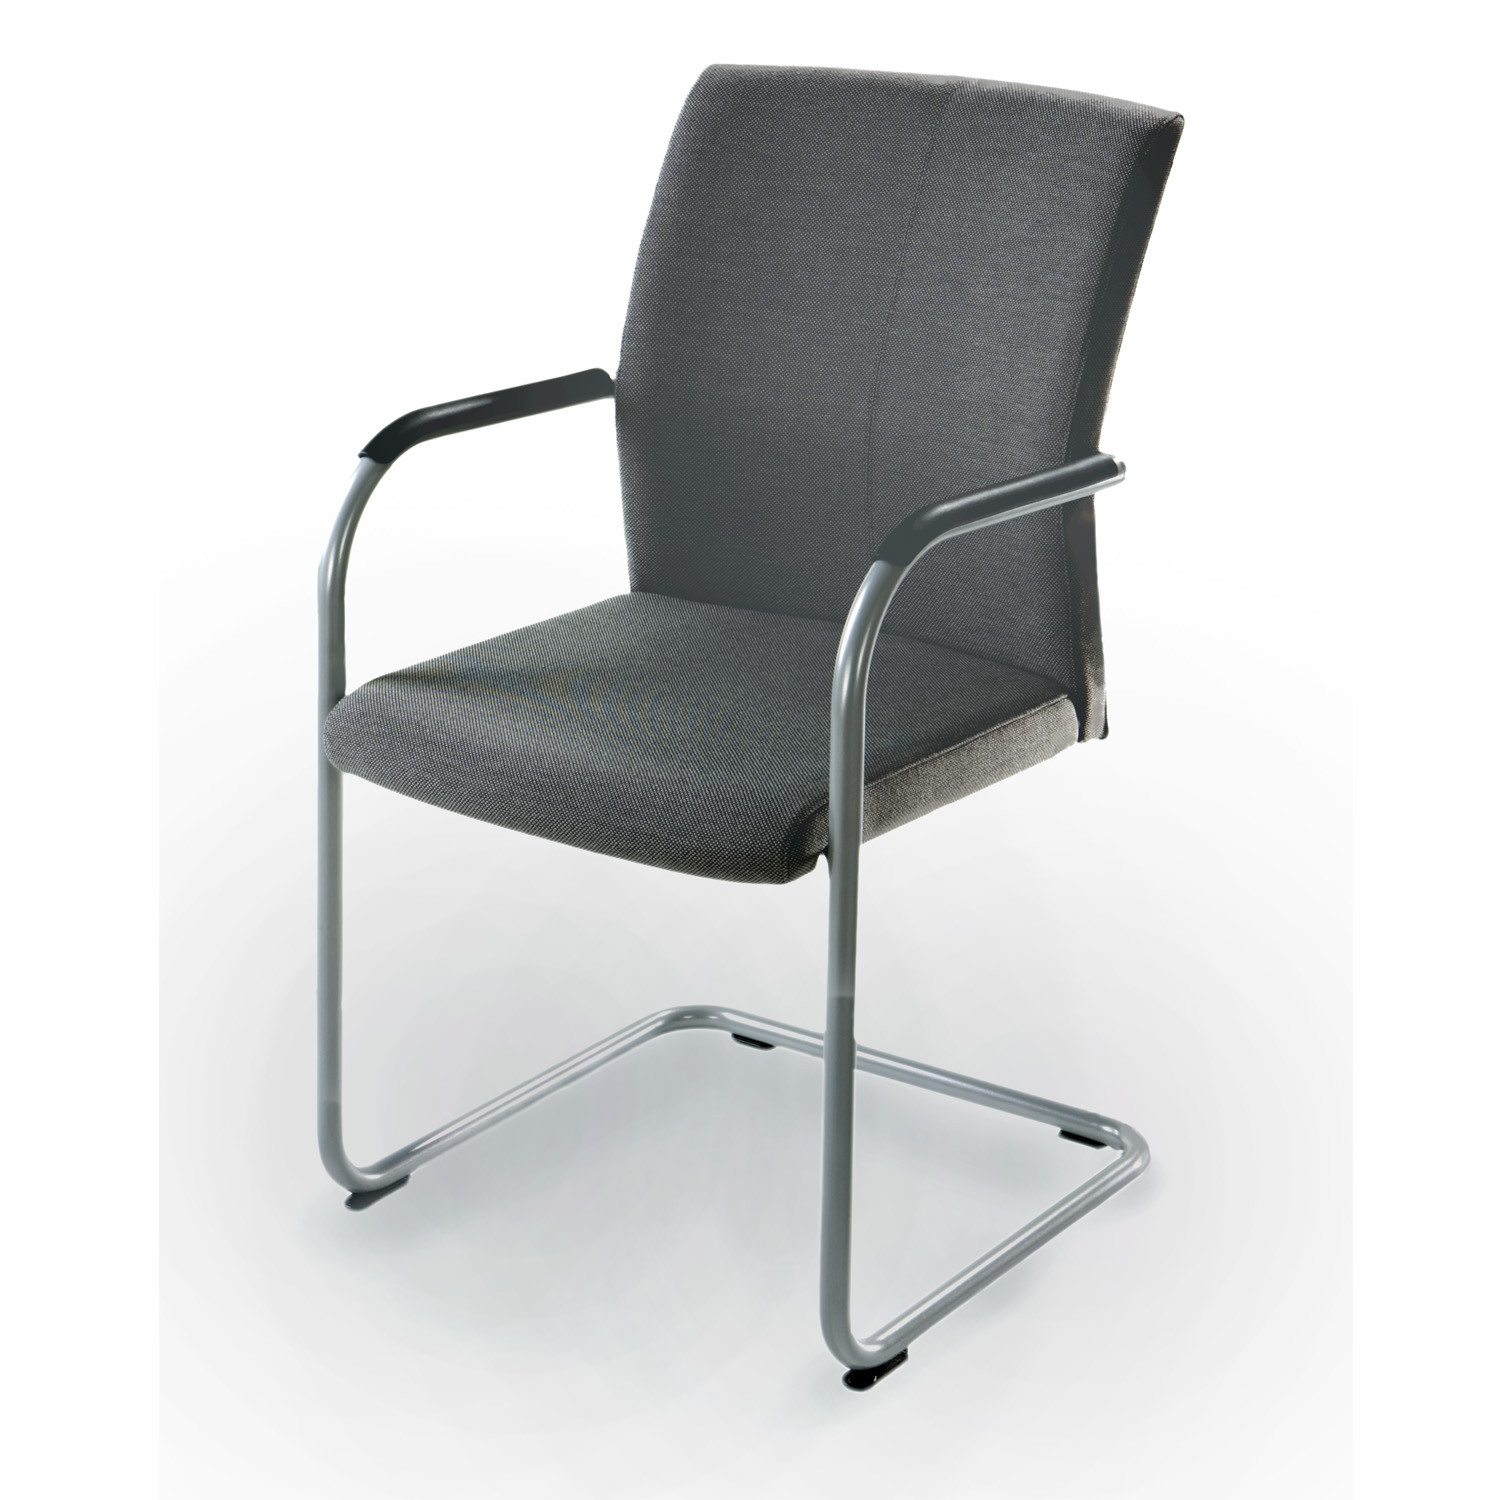 Cato Casa Chairs by Klober